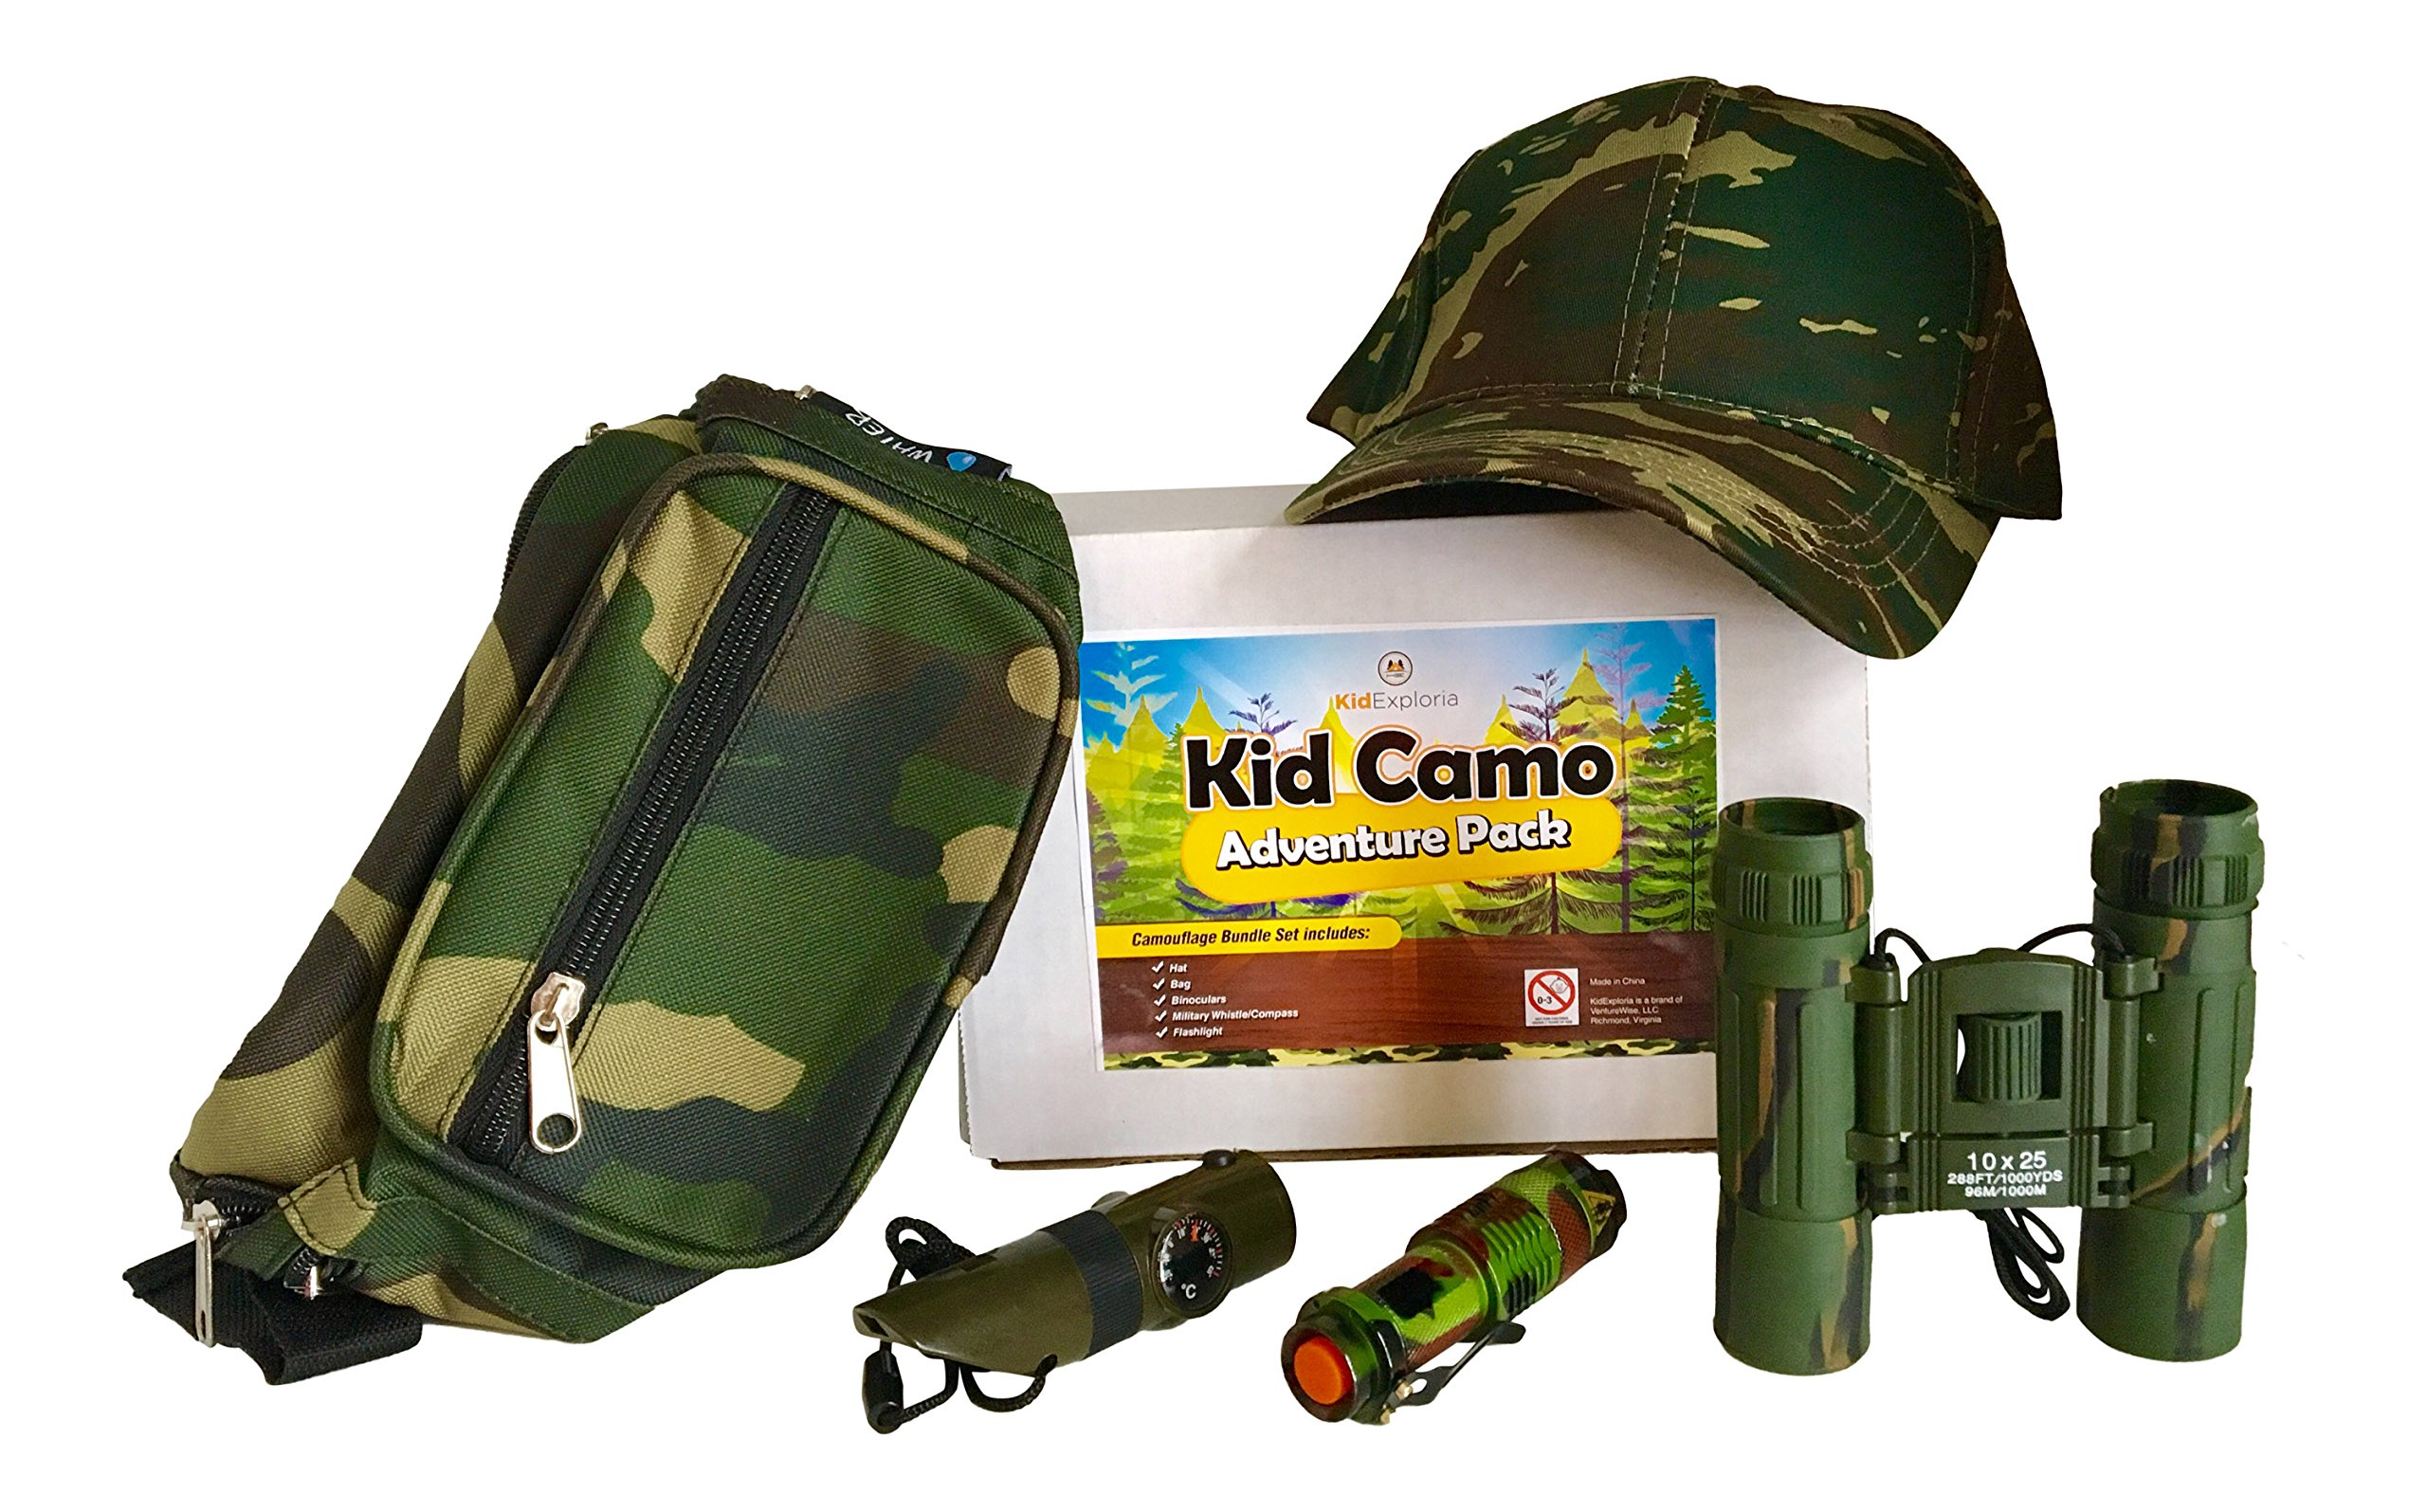 Kid Camo Hat and Survival Gear Kit for Boys: Army Compact Camouflage Binoculars, Cap, Bag, Compass Whistle 7 in 1 & Military Mini Flashlight by KidExploria